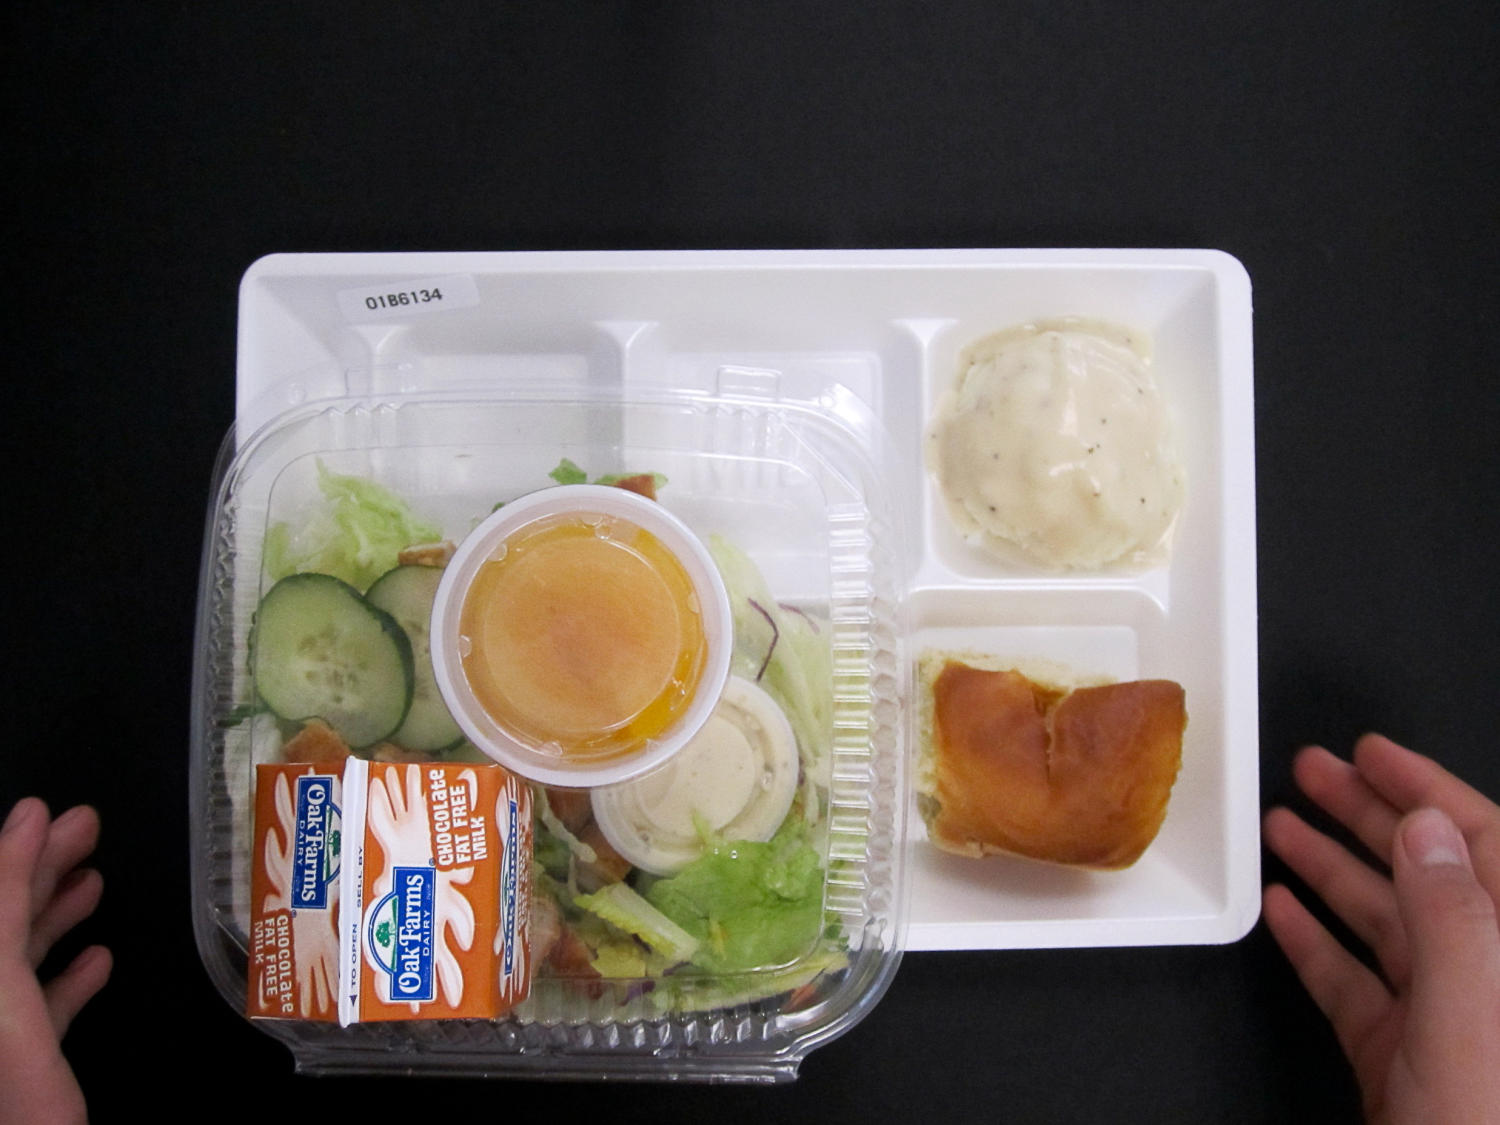 Student Lunch Tray: 01_20110413_01B6134                                                                                                      [Sequence #]: 1 of 2